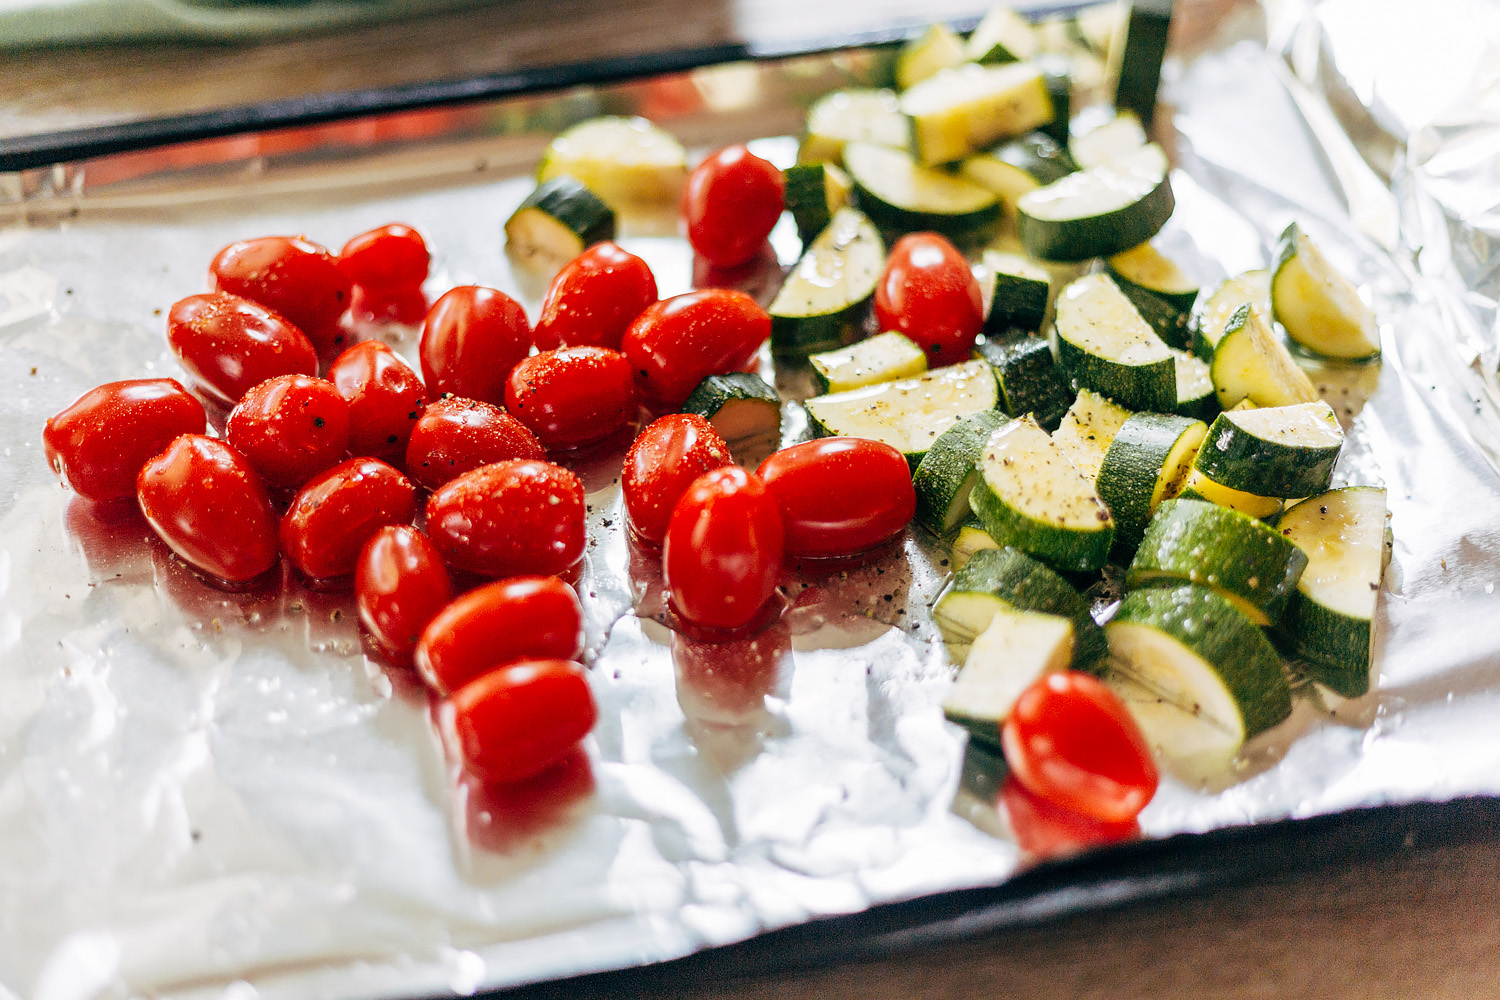 zucchini and tomatoes on a baking sheet